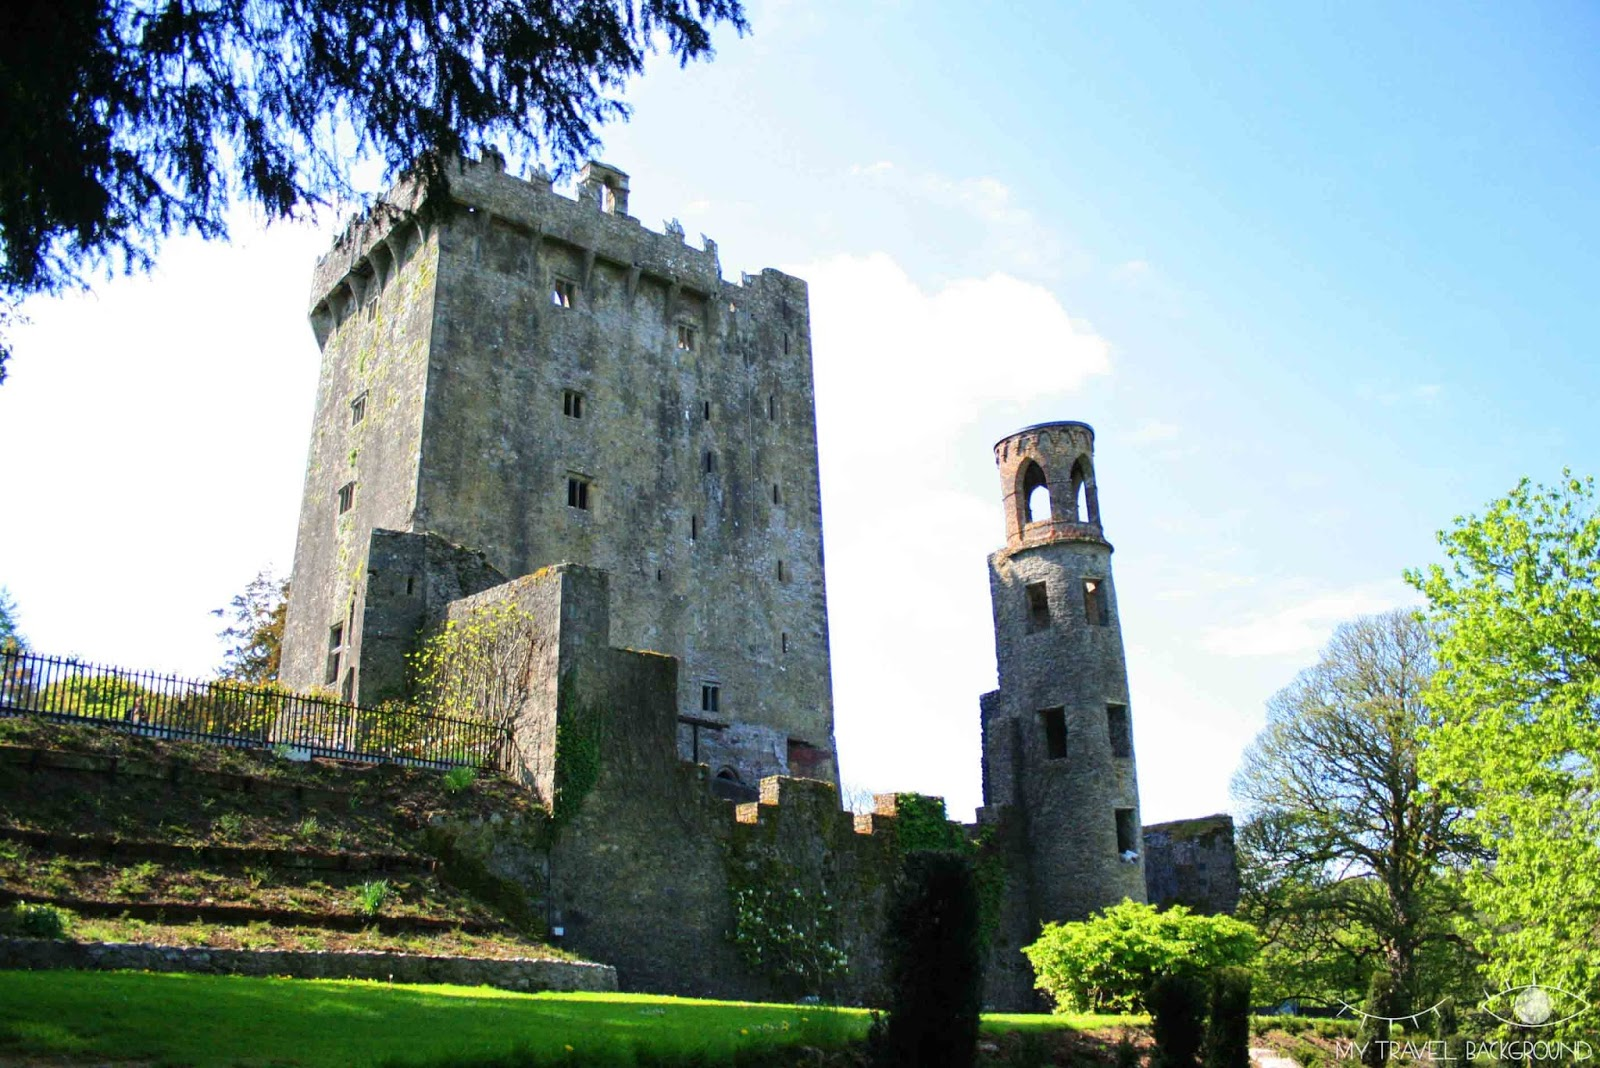 My Travel Background : 3 villes irlandaises, Blarney Castle